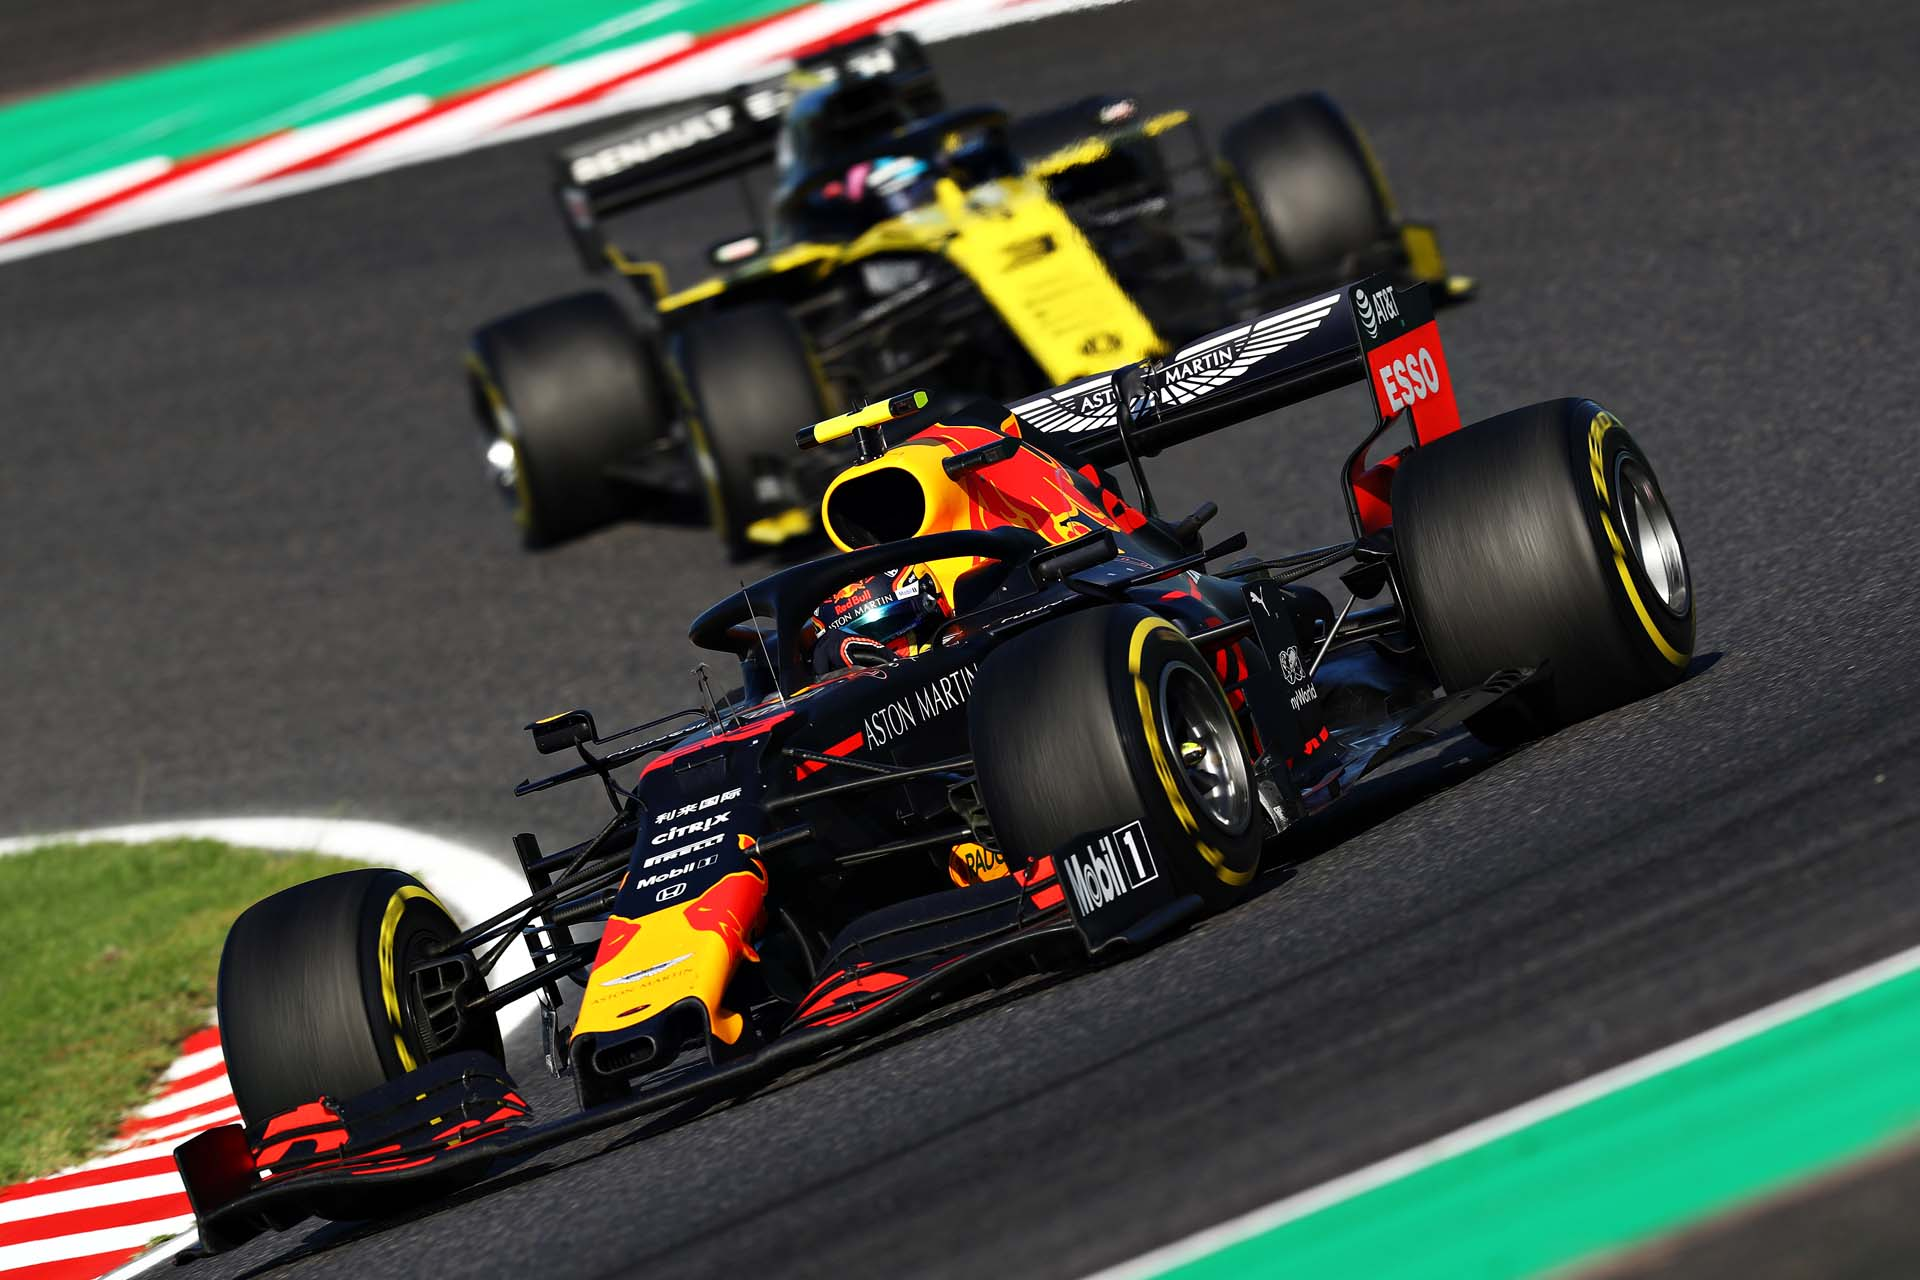 SUZUKA, JAPAN - OCTOBER 13: Alexander Albon of Thailand driving the (23) Aston Martin Red Bull Racing RB15 leads Daniel Ricciardo of Australia driving the (3) Renault Sport Formula One Team RS19 on track during the F1 Grand Prix of Japan at Suzuka Circuit on October 13, 2019 in Suzuka, Japan. (Photo by Mark Thompson/Getty Images) // Getty Images / Red Bull Content Pool // AP-21UYDF5TN1W11 // Usage for editorial use only //